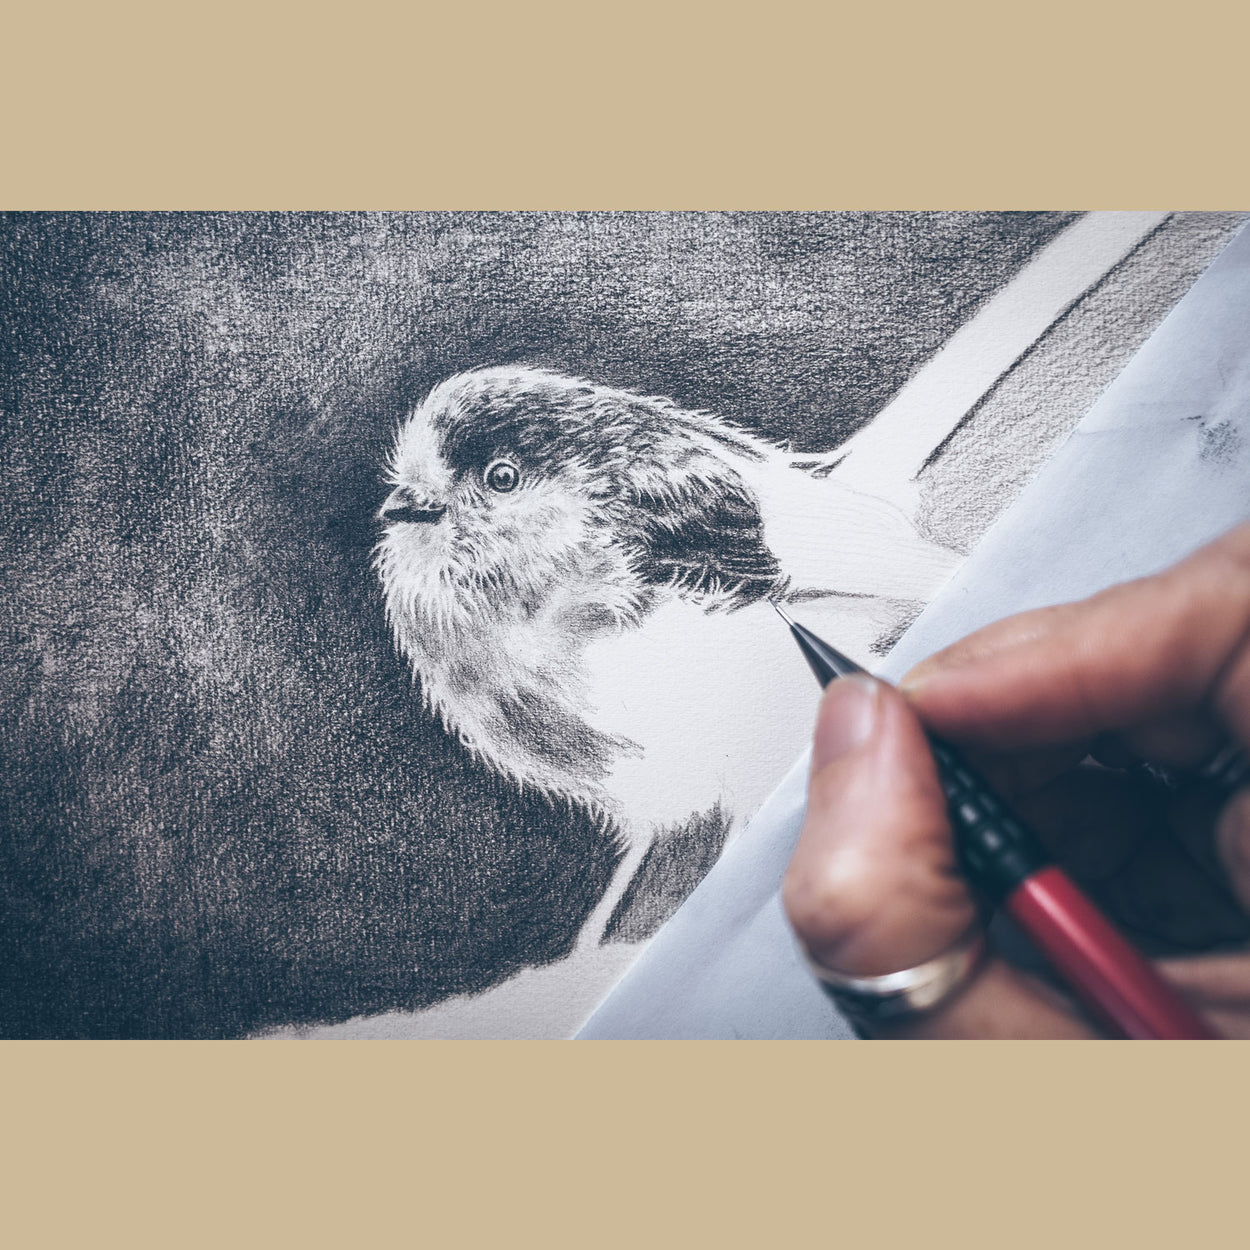 Bird Long-Tailed Tit Drawing in Progress - The Thriving Wild